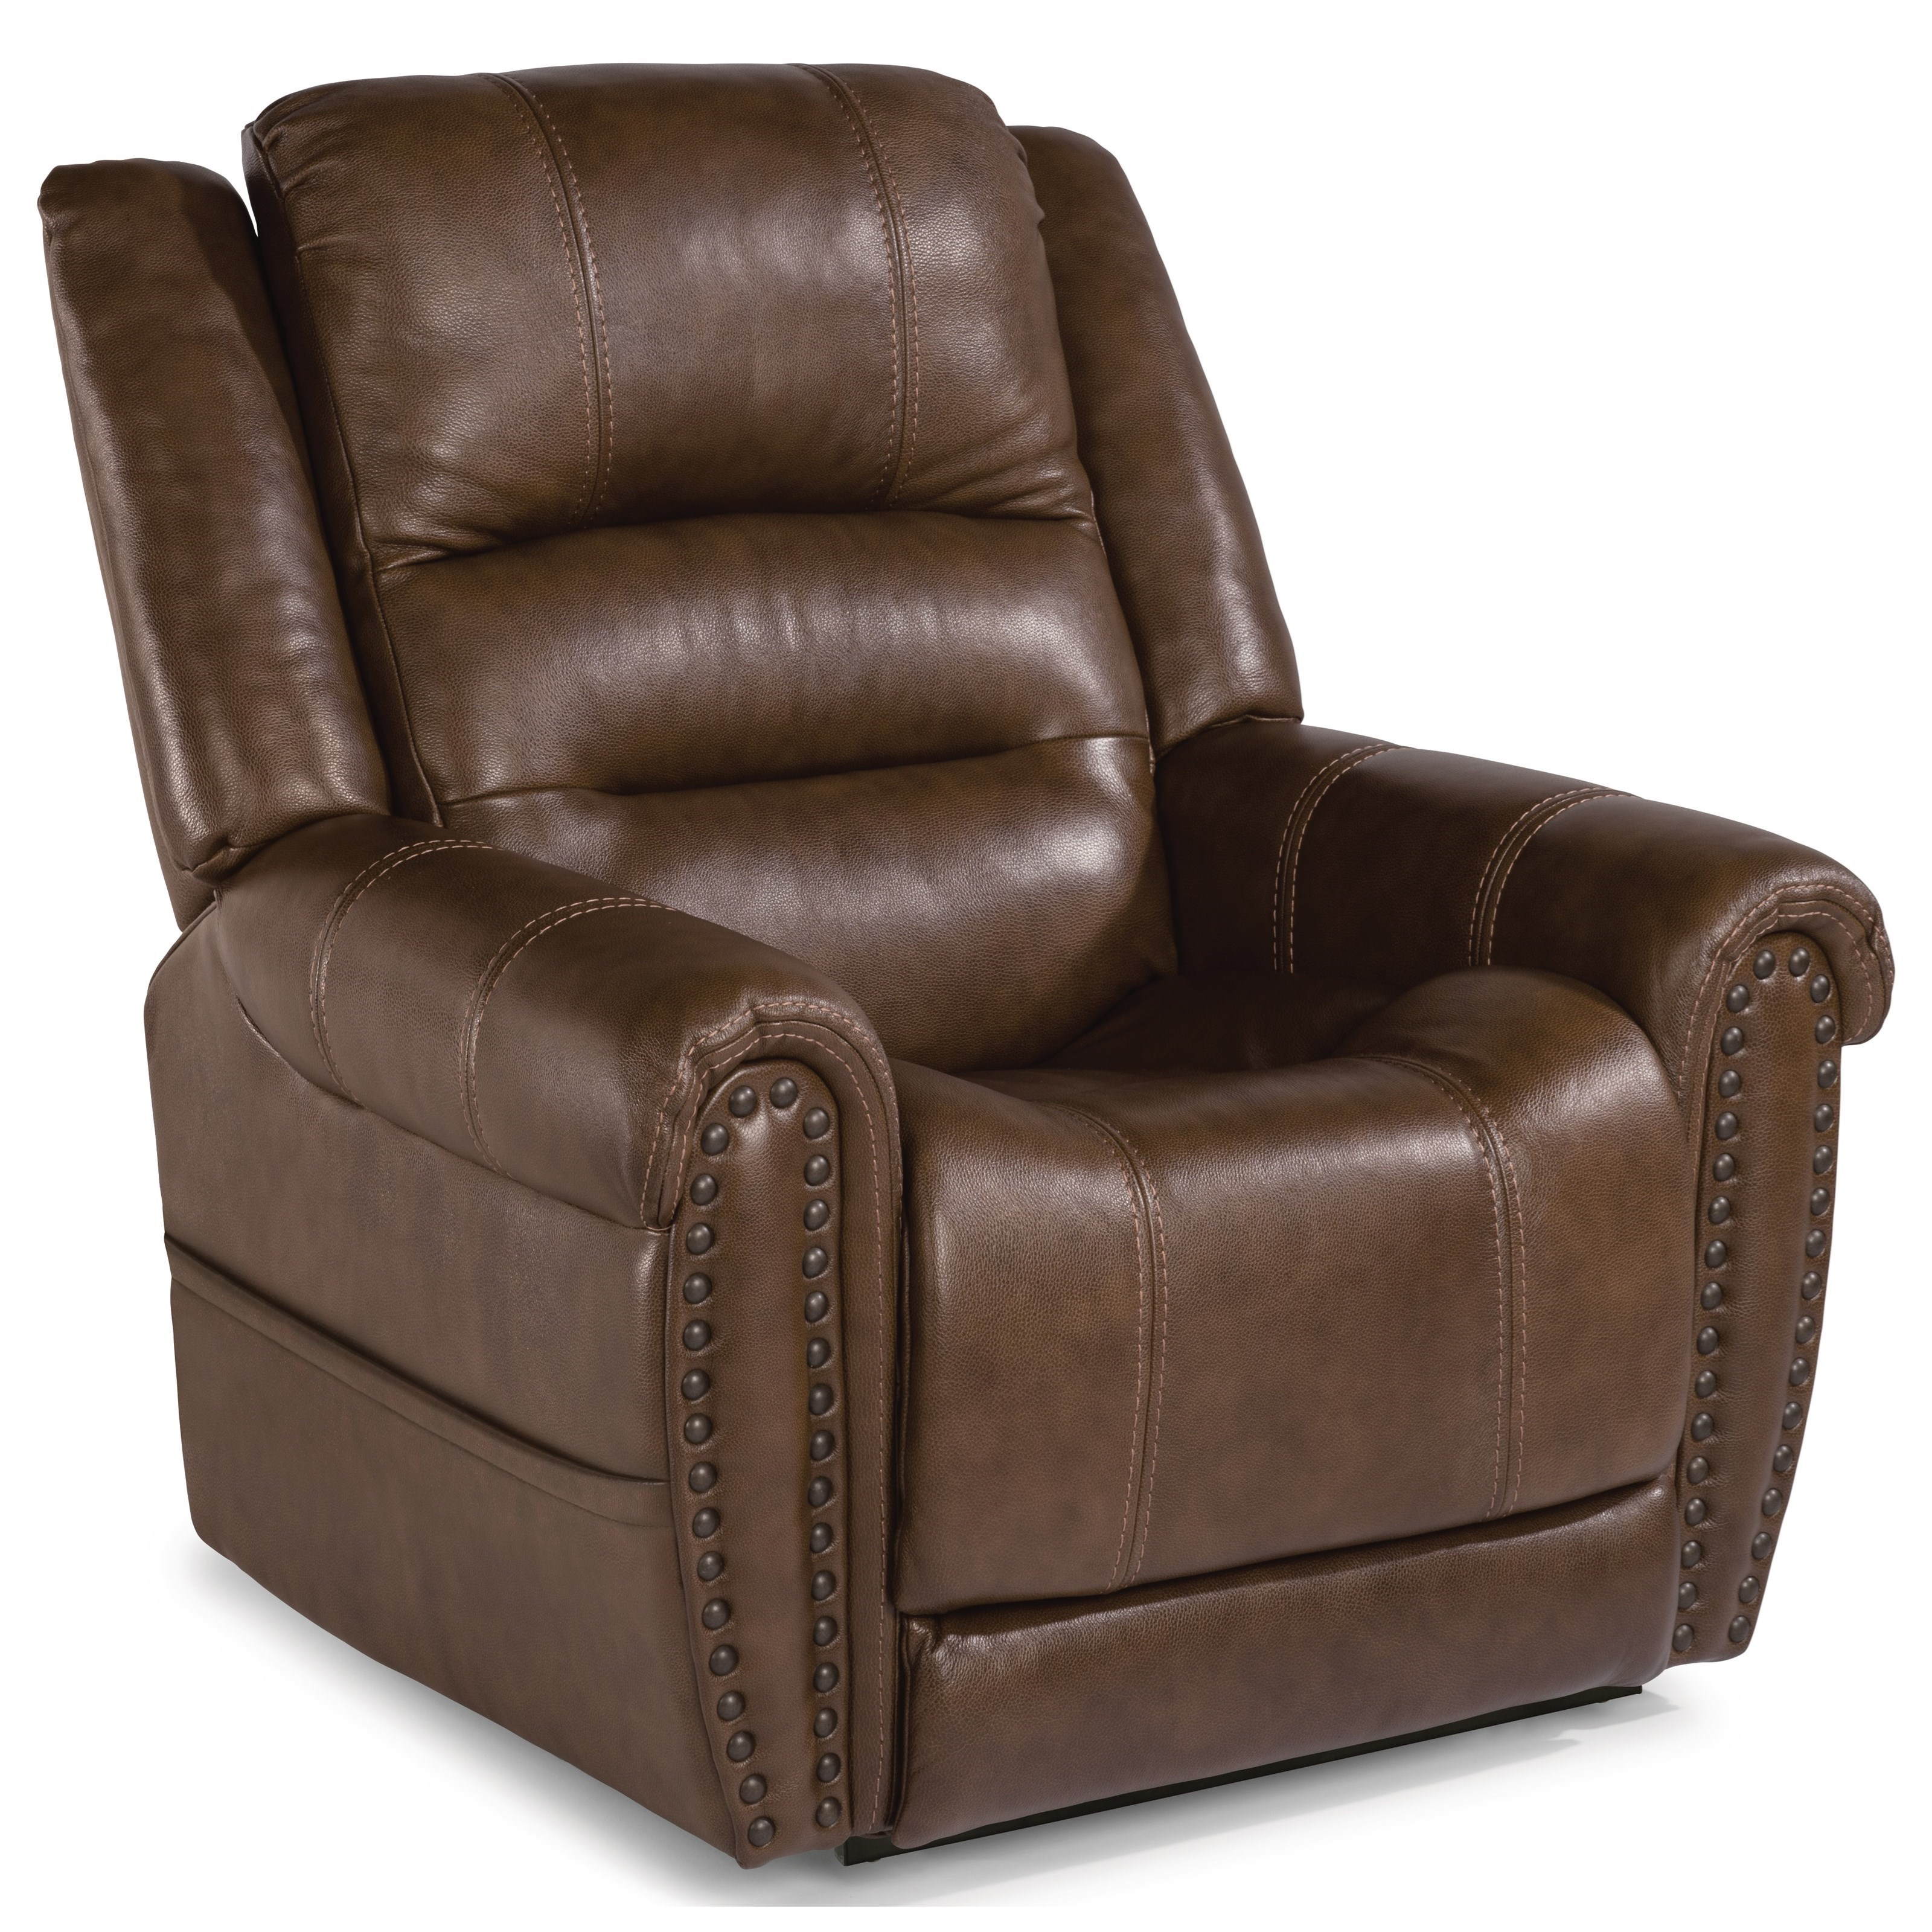 Latitudes - Oscar Power Lift Recliner by Flexsteel at Fisher Home Furnishings